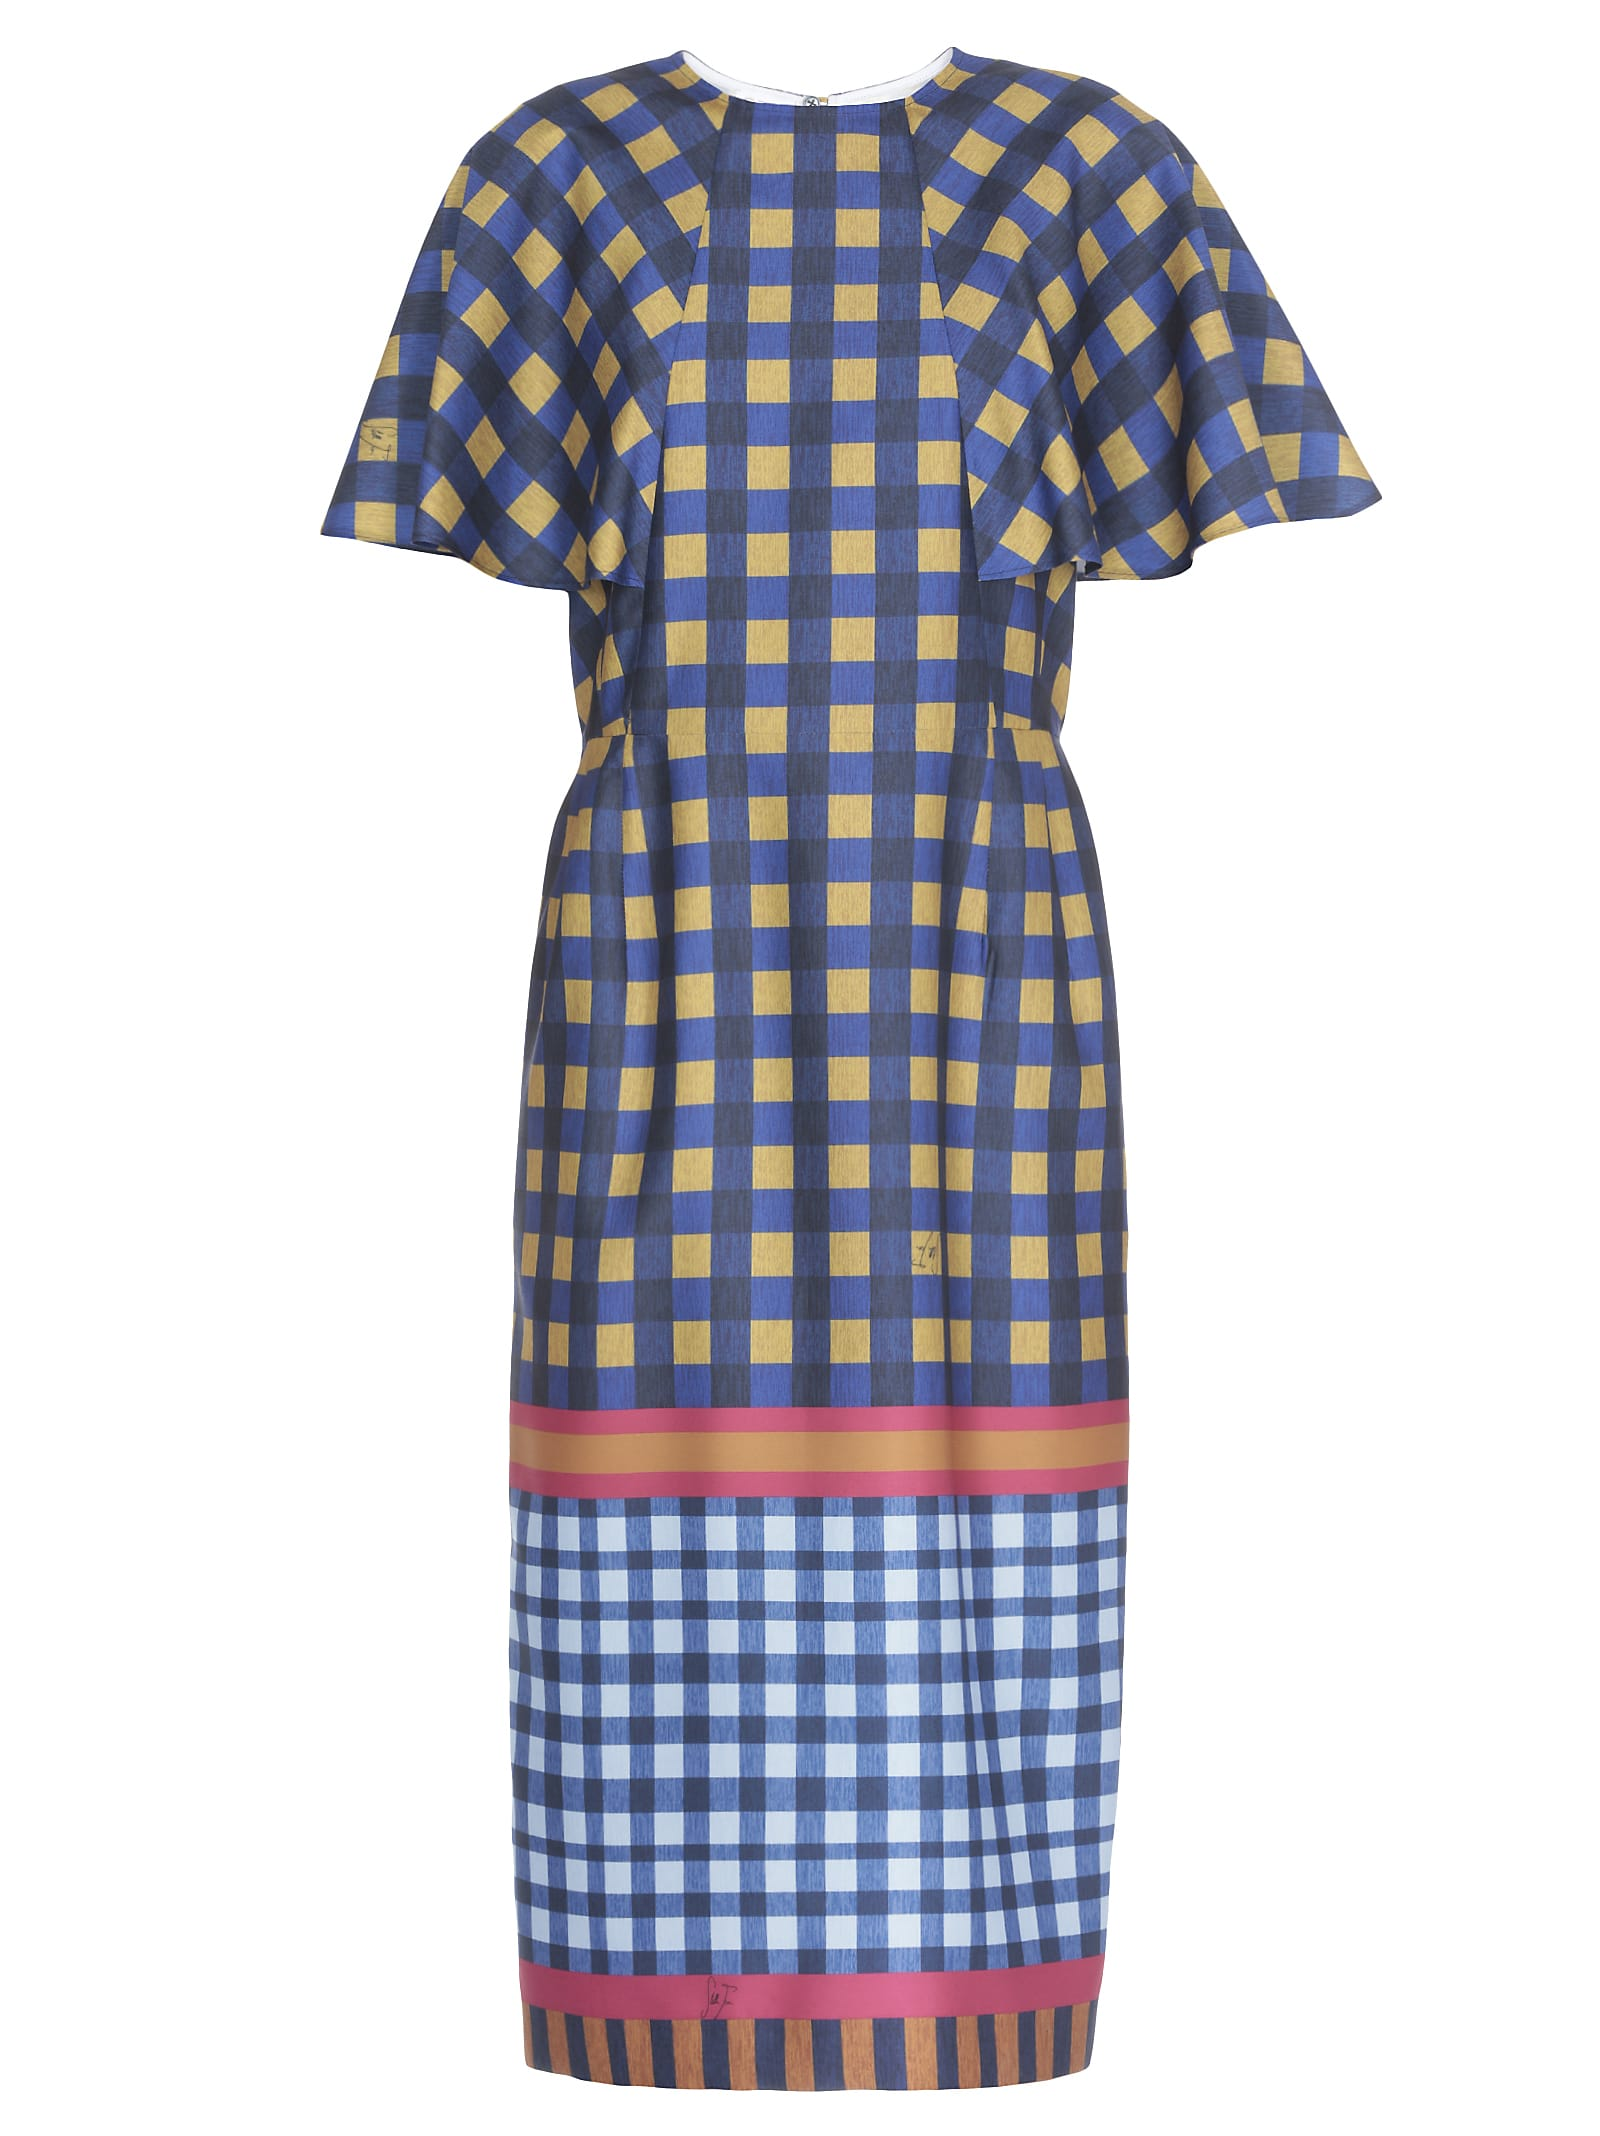 Stella Jean Check Patterned Dress